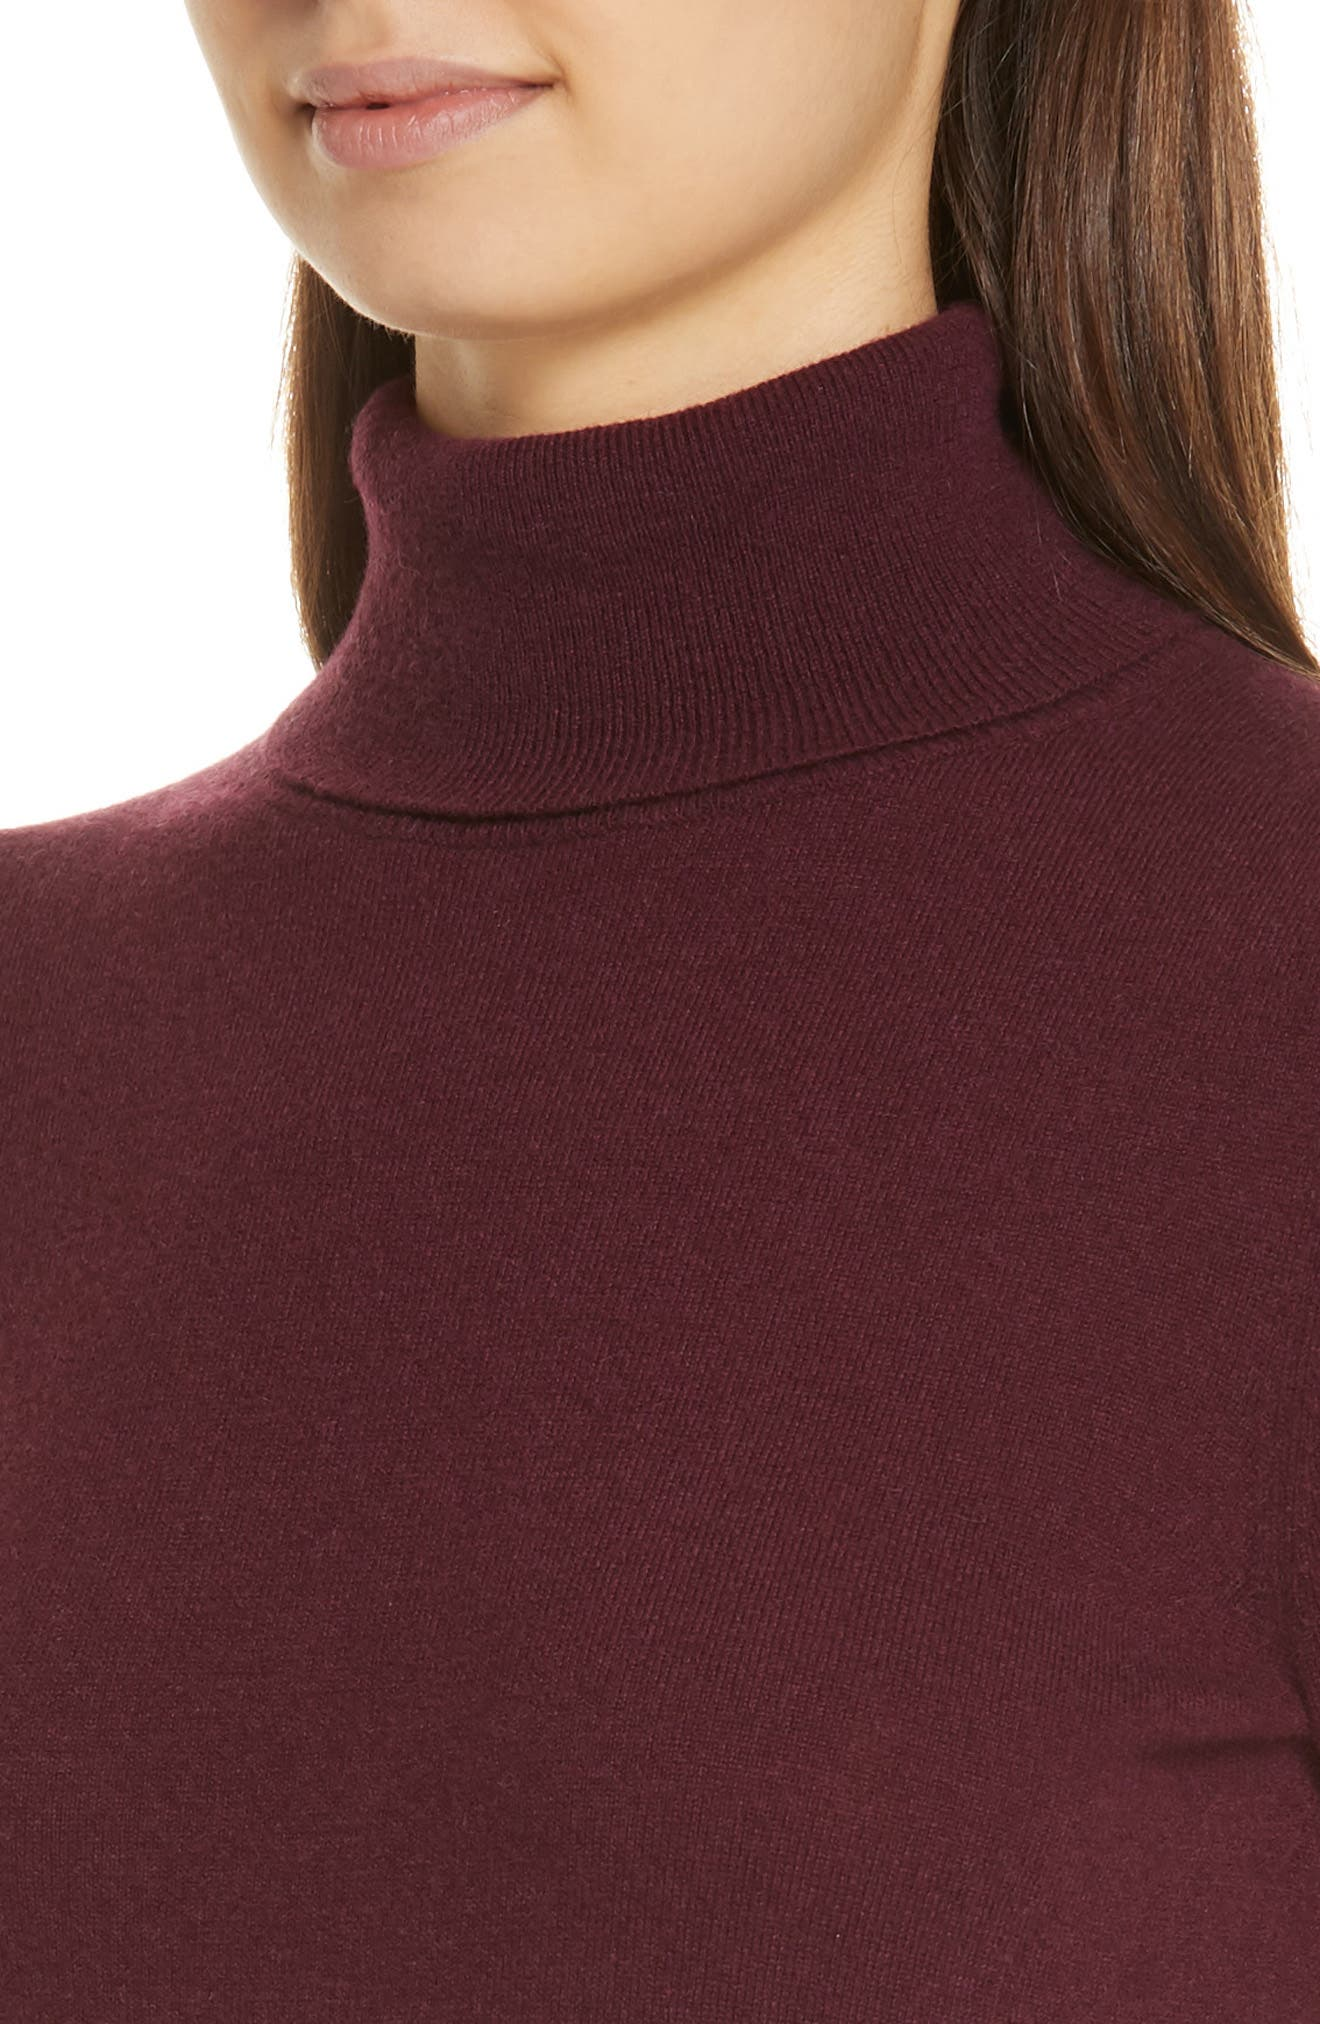 Turtleneck Cashmere Sweater,                             Alternate thumbnail 4, color,                             PURPLE DARK